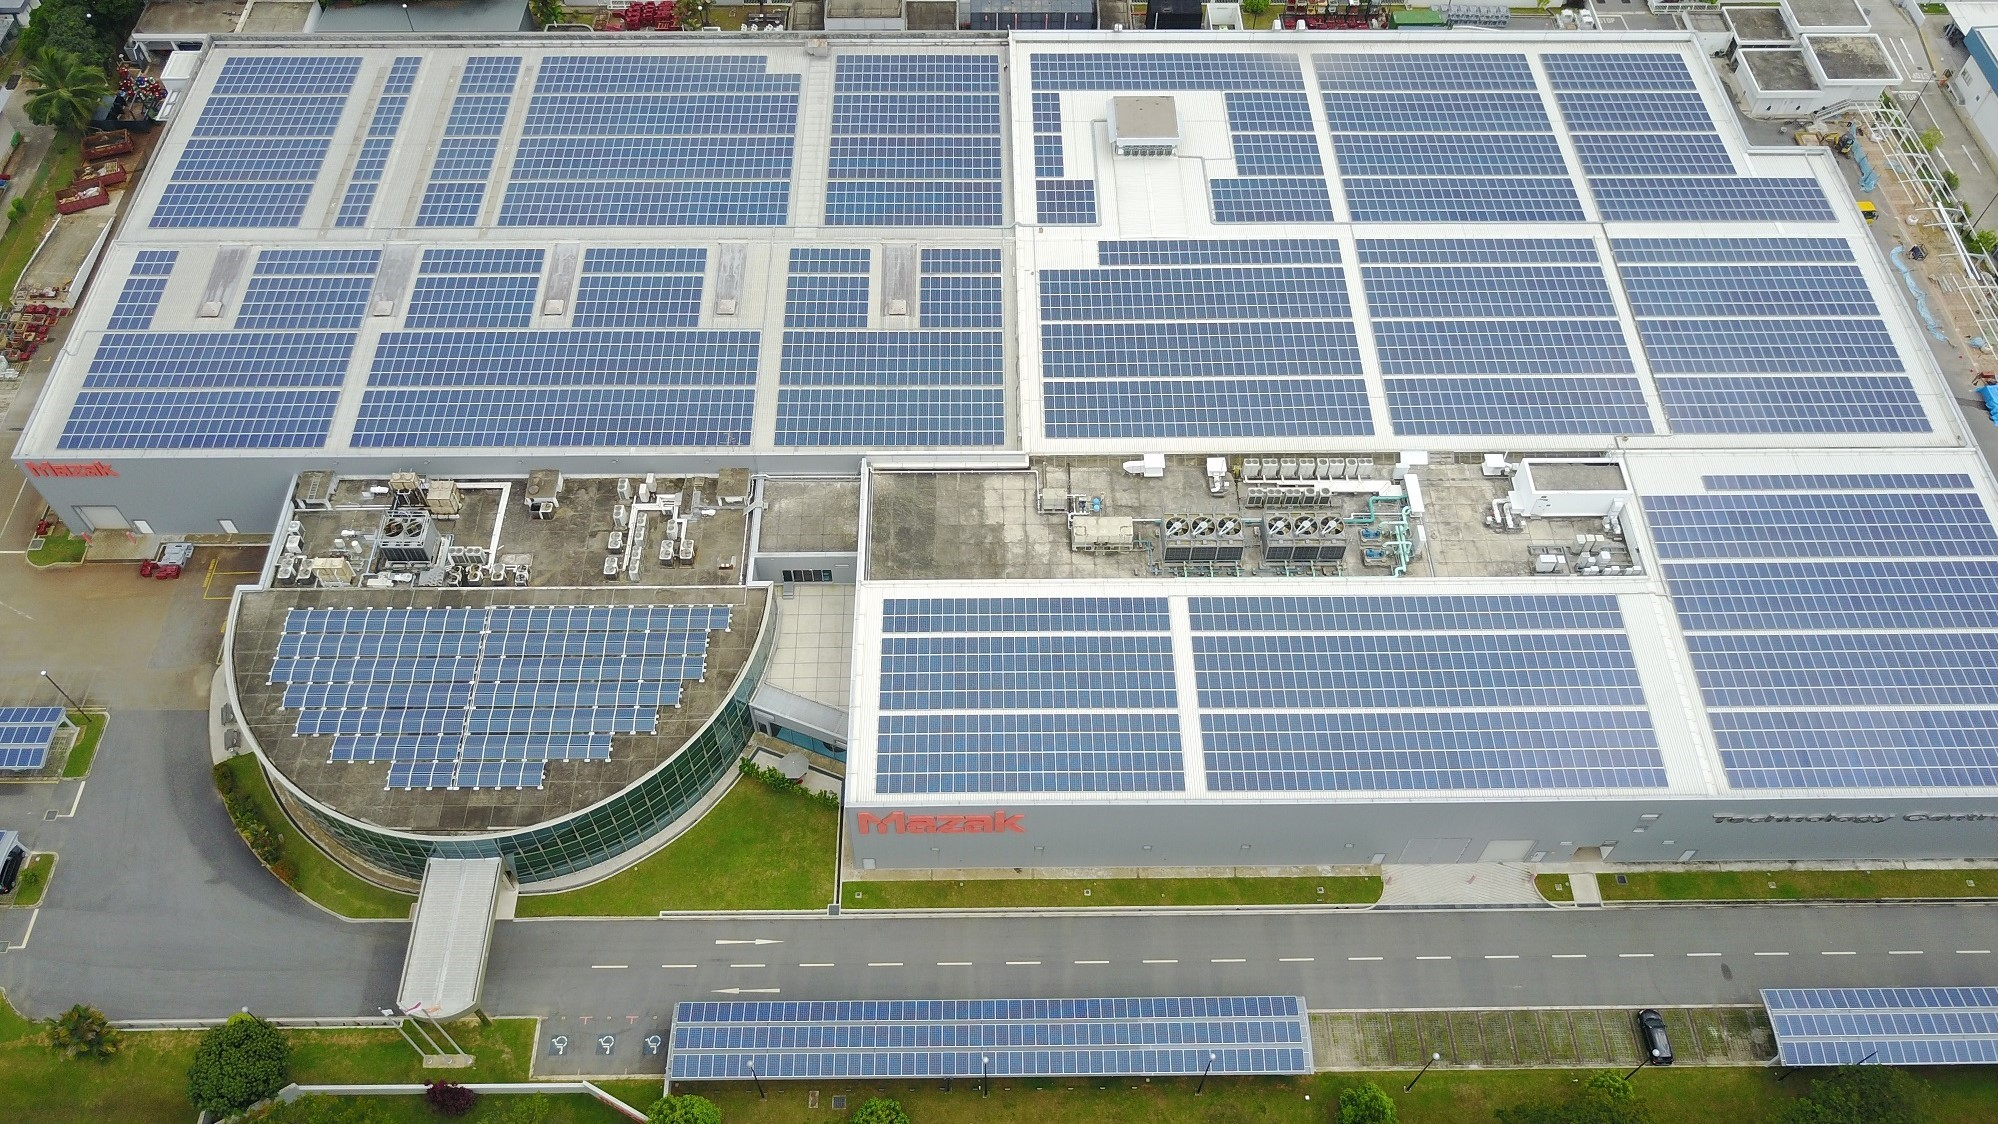 CLEANTECH AND ING INK ASIA PACIFIC'S LARGEST GREEN LOAN FOR C&I ROOFTOP SOLAR PROJECTS